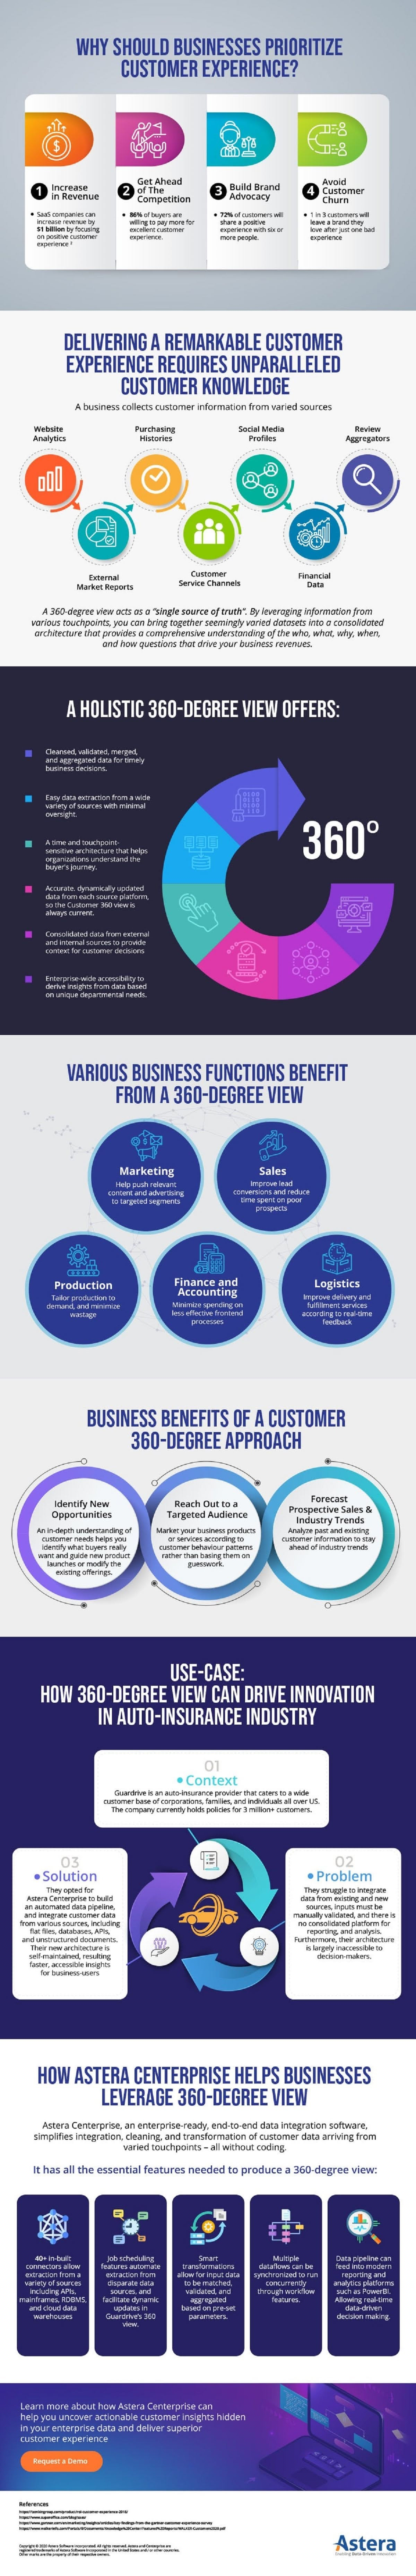 gain-insights-into-your-customers-and-target-segments-with-an-integrated-customer-360-view-infographic